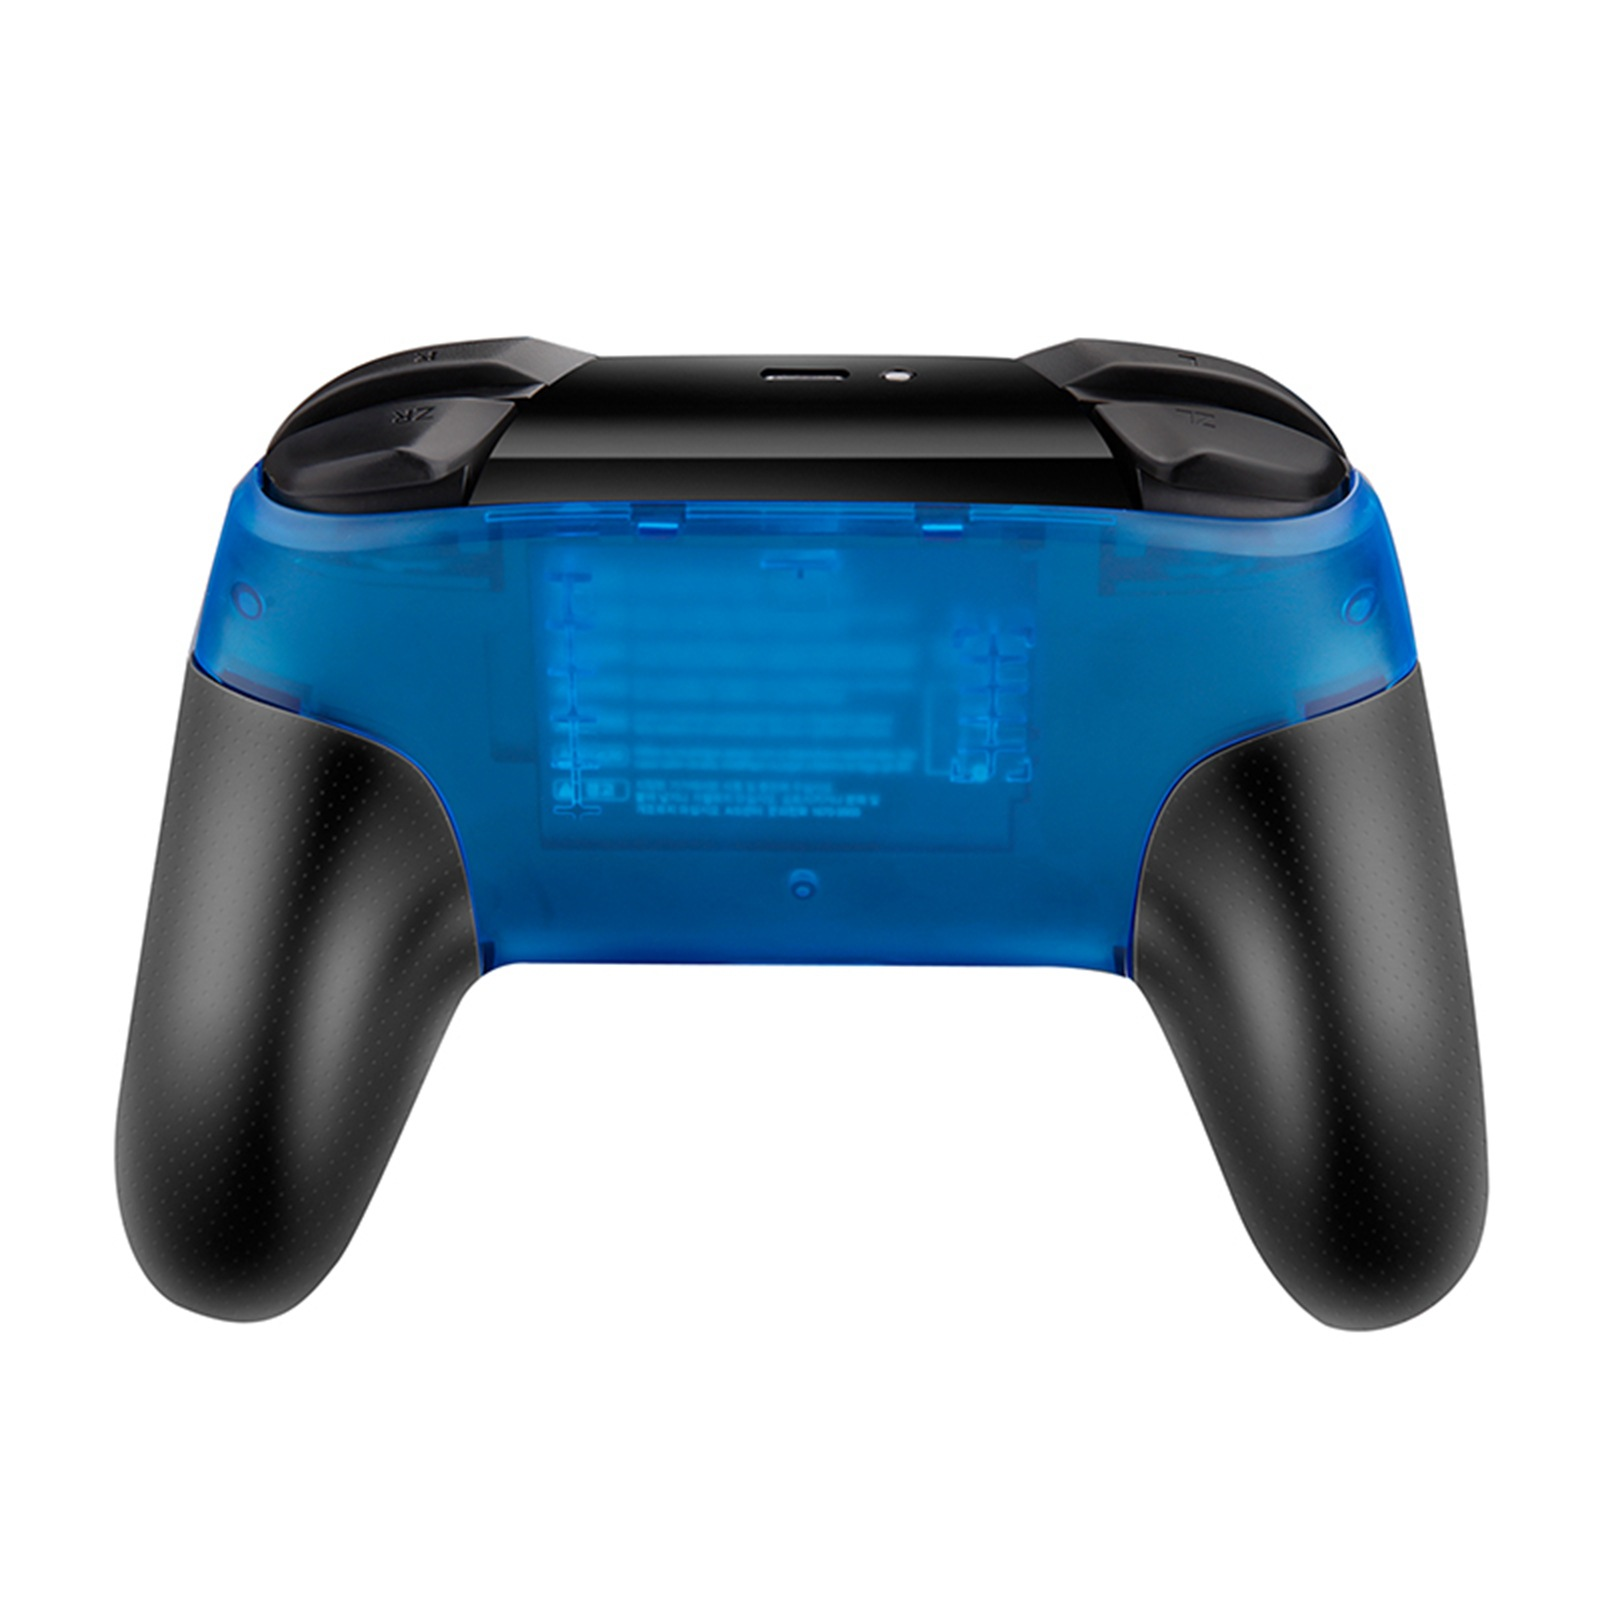 Image 3 - For Nintendo Switch Pro Controller Replaceable Transparent Shell DIY Modified Shell Third Party Replacement Buttons Handle Cover-in Replacement Parts & Accessories from Consumer Electronics